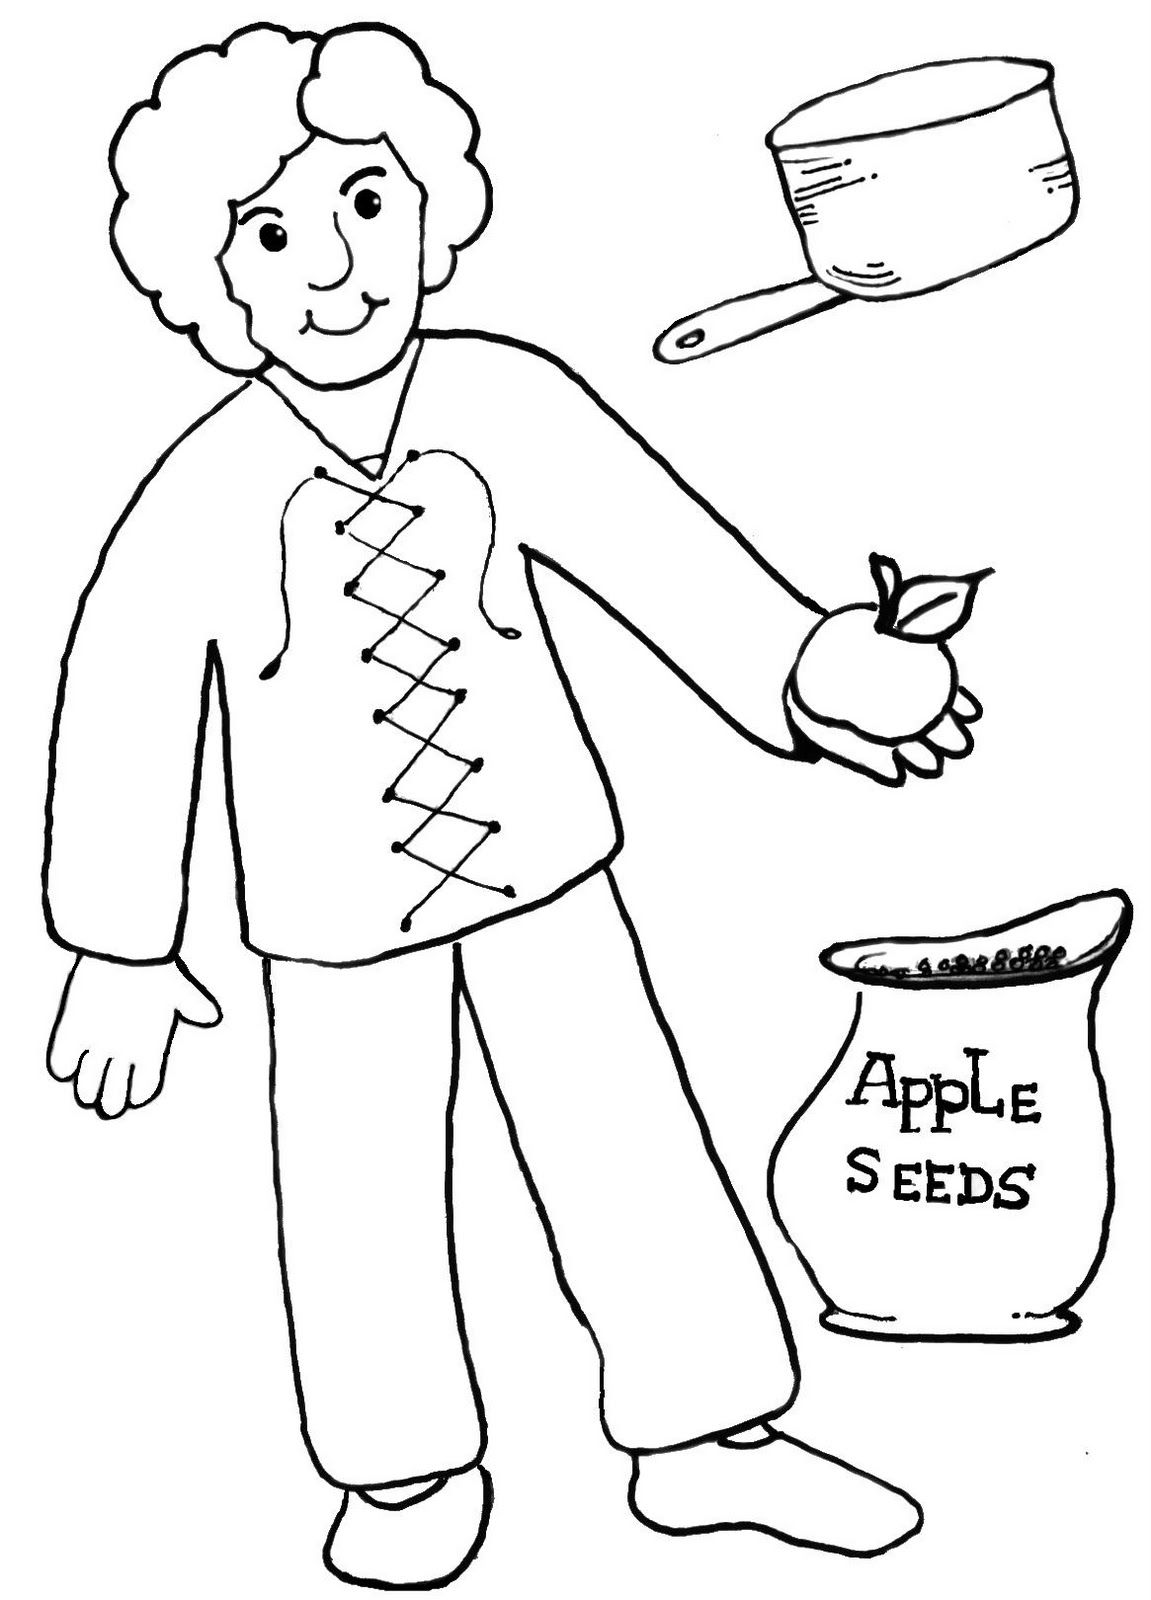 coloring johnny appleseed johnny appleseed coloring pages coloring home coloring johnny appleseed